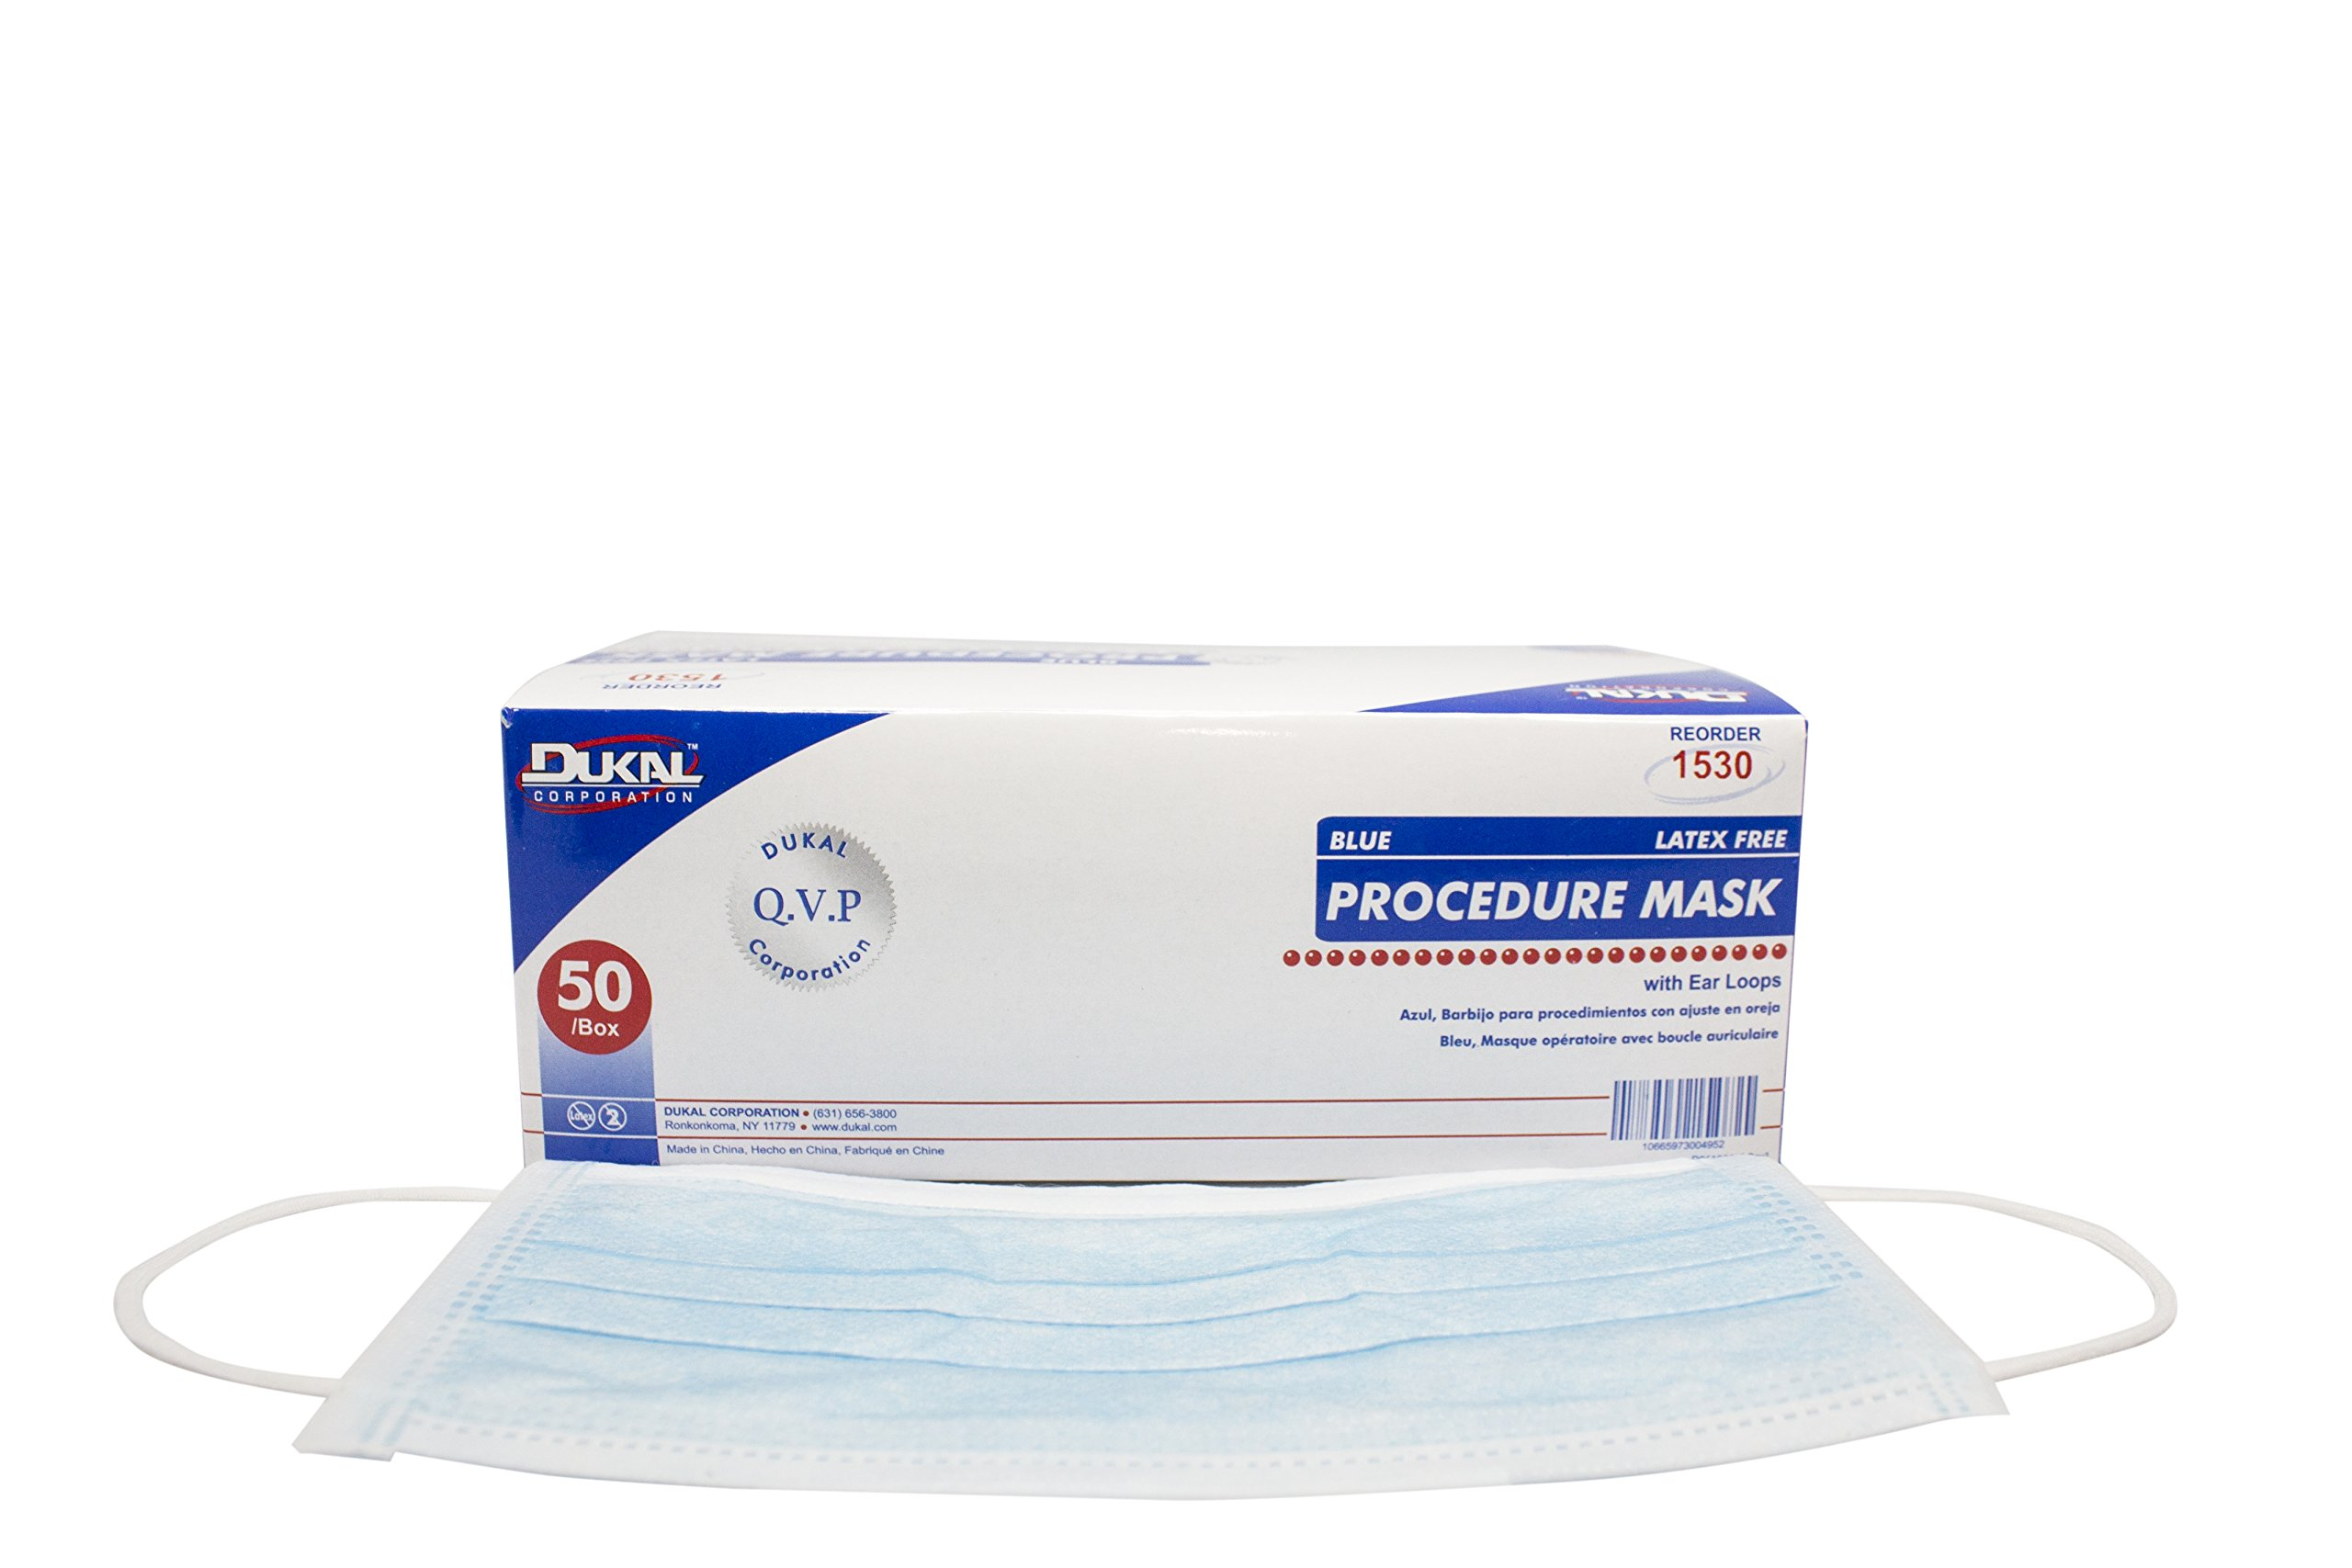 Dukal 1530 Mask, Procedure, with Ear Loop, Non Sterile, Blue (Pack of 300) by Dukal (Image #1)